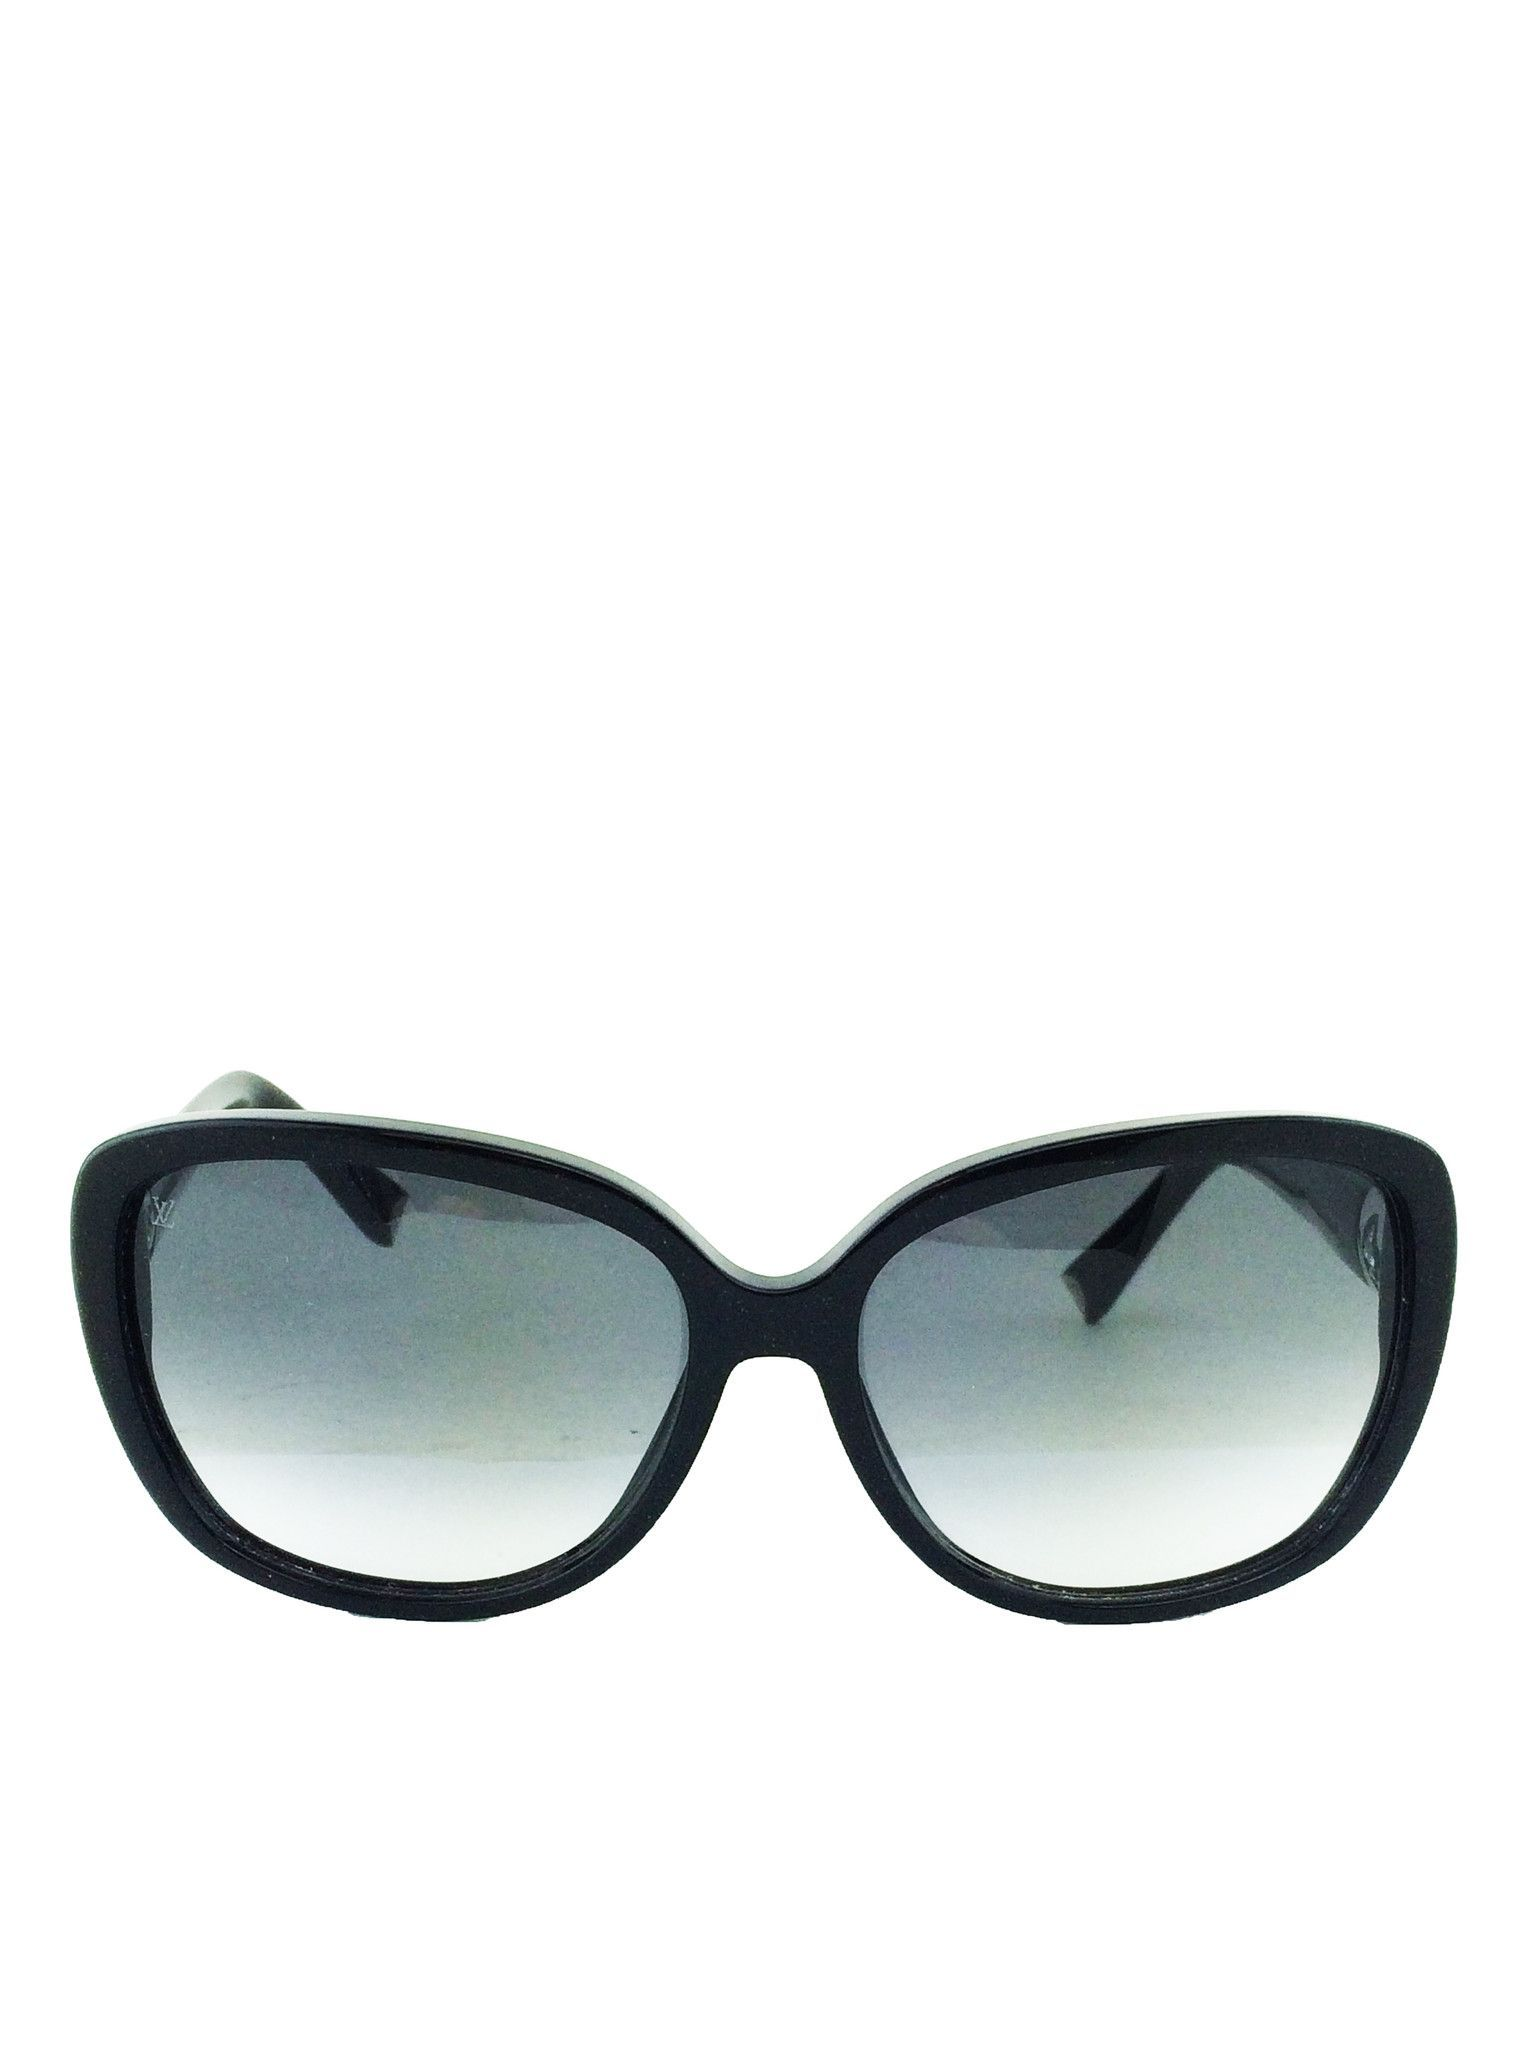 4fd3de2c3b Louis Vuitton Hortensia Cat Eye Sunglasses Black